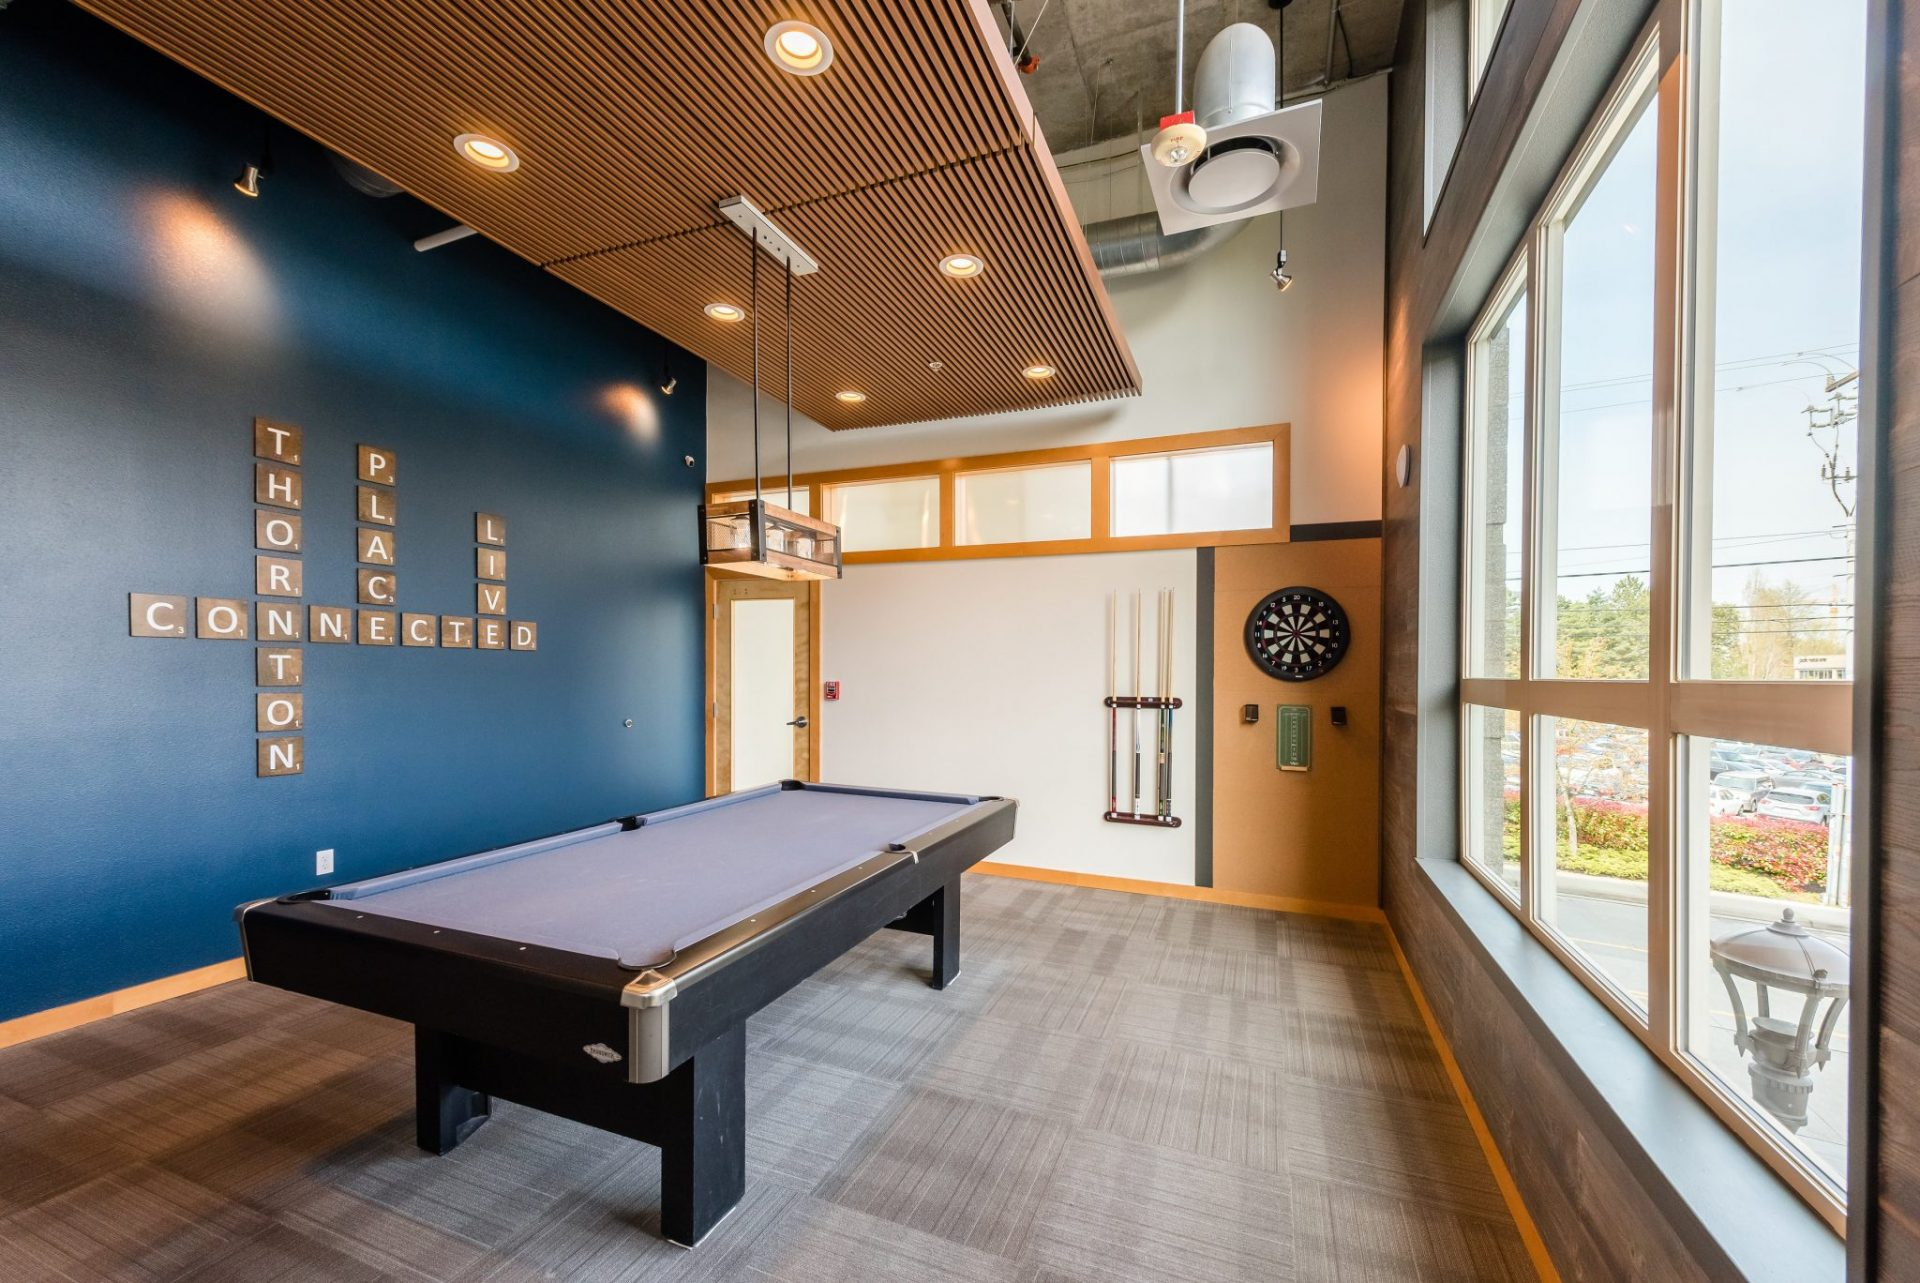 Game Room At Thornton Place Apartments In Seattle, WA